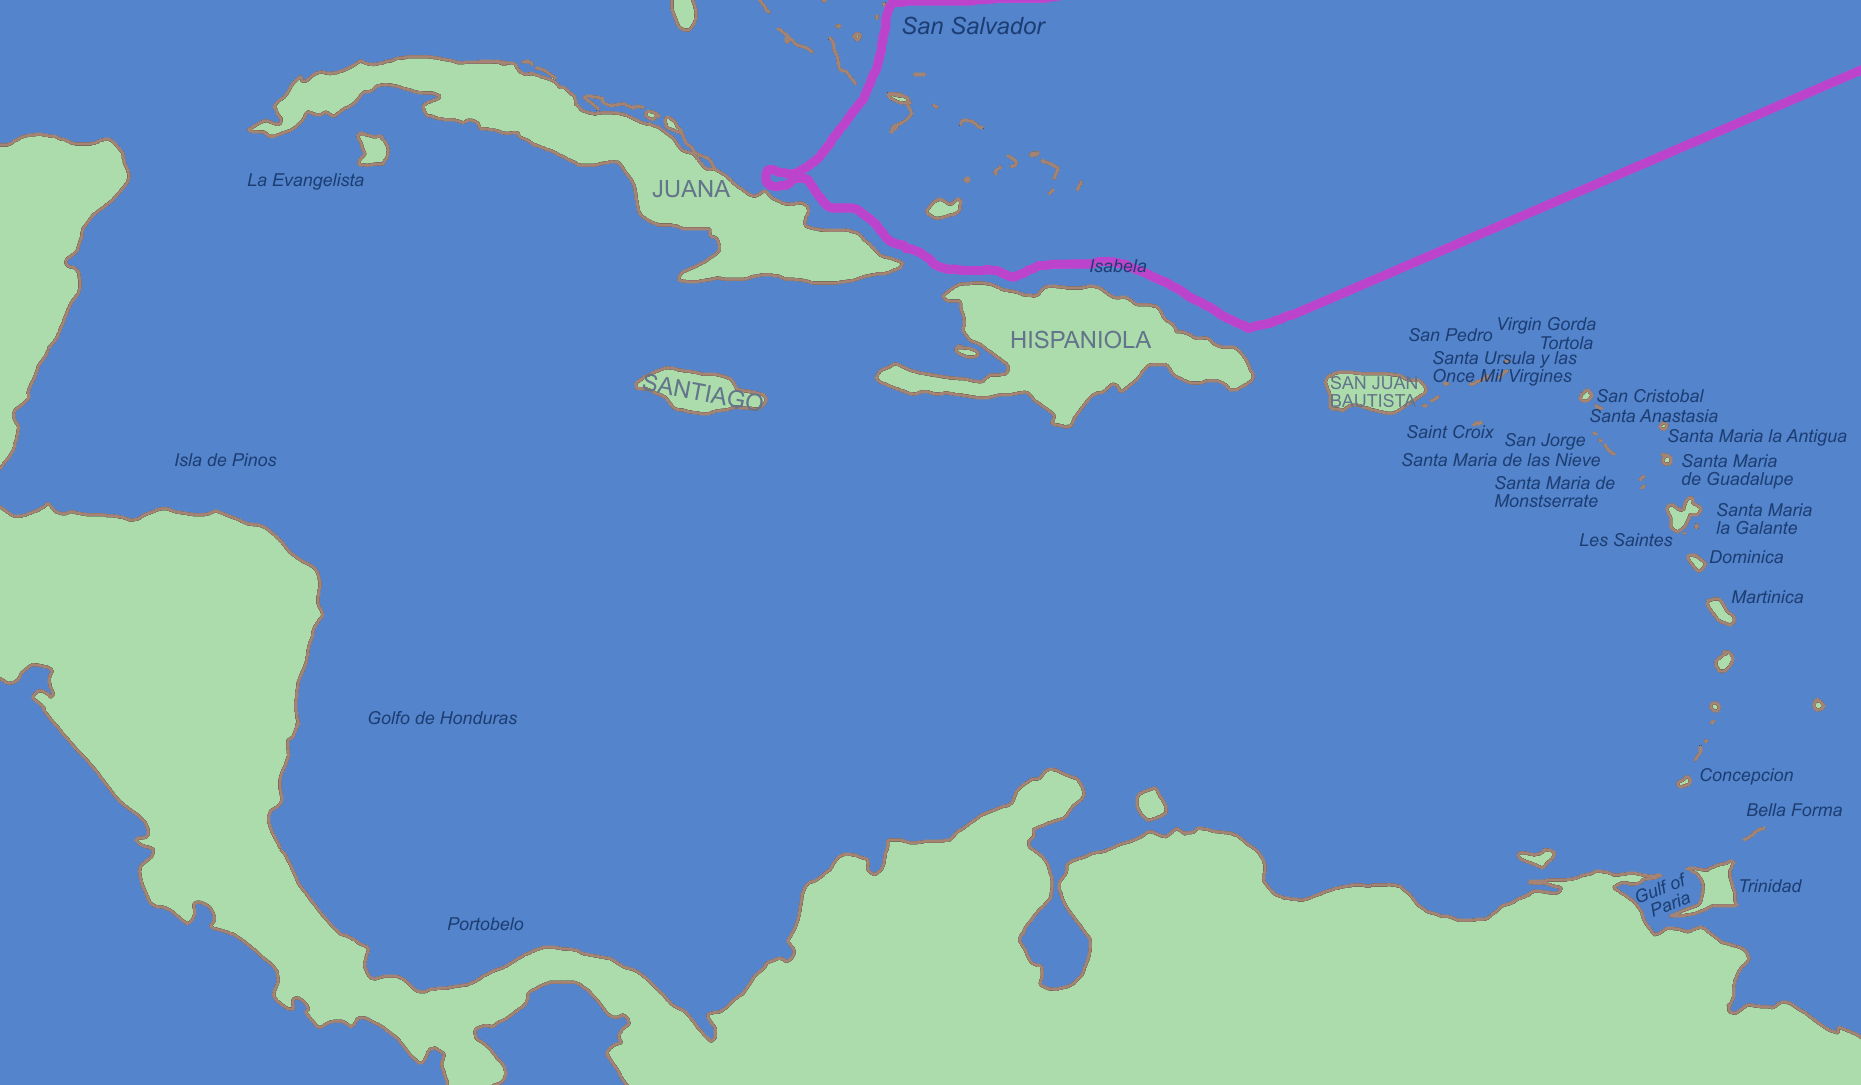 First voyage of Christopher Columbus in 1492